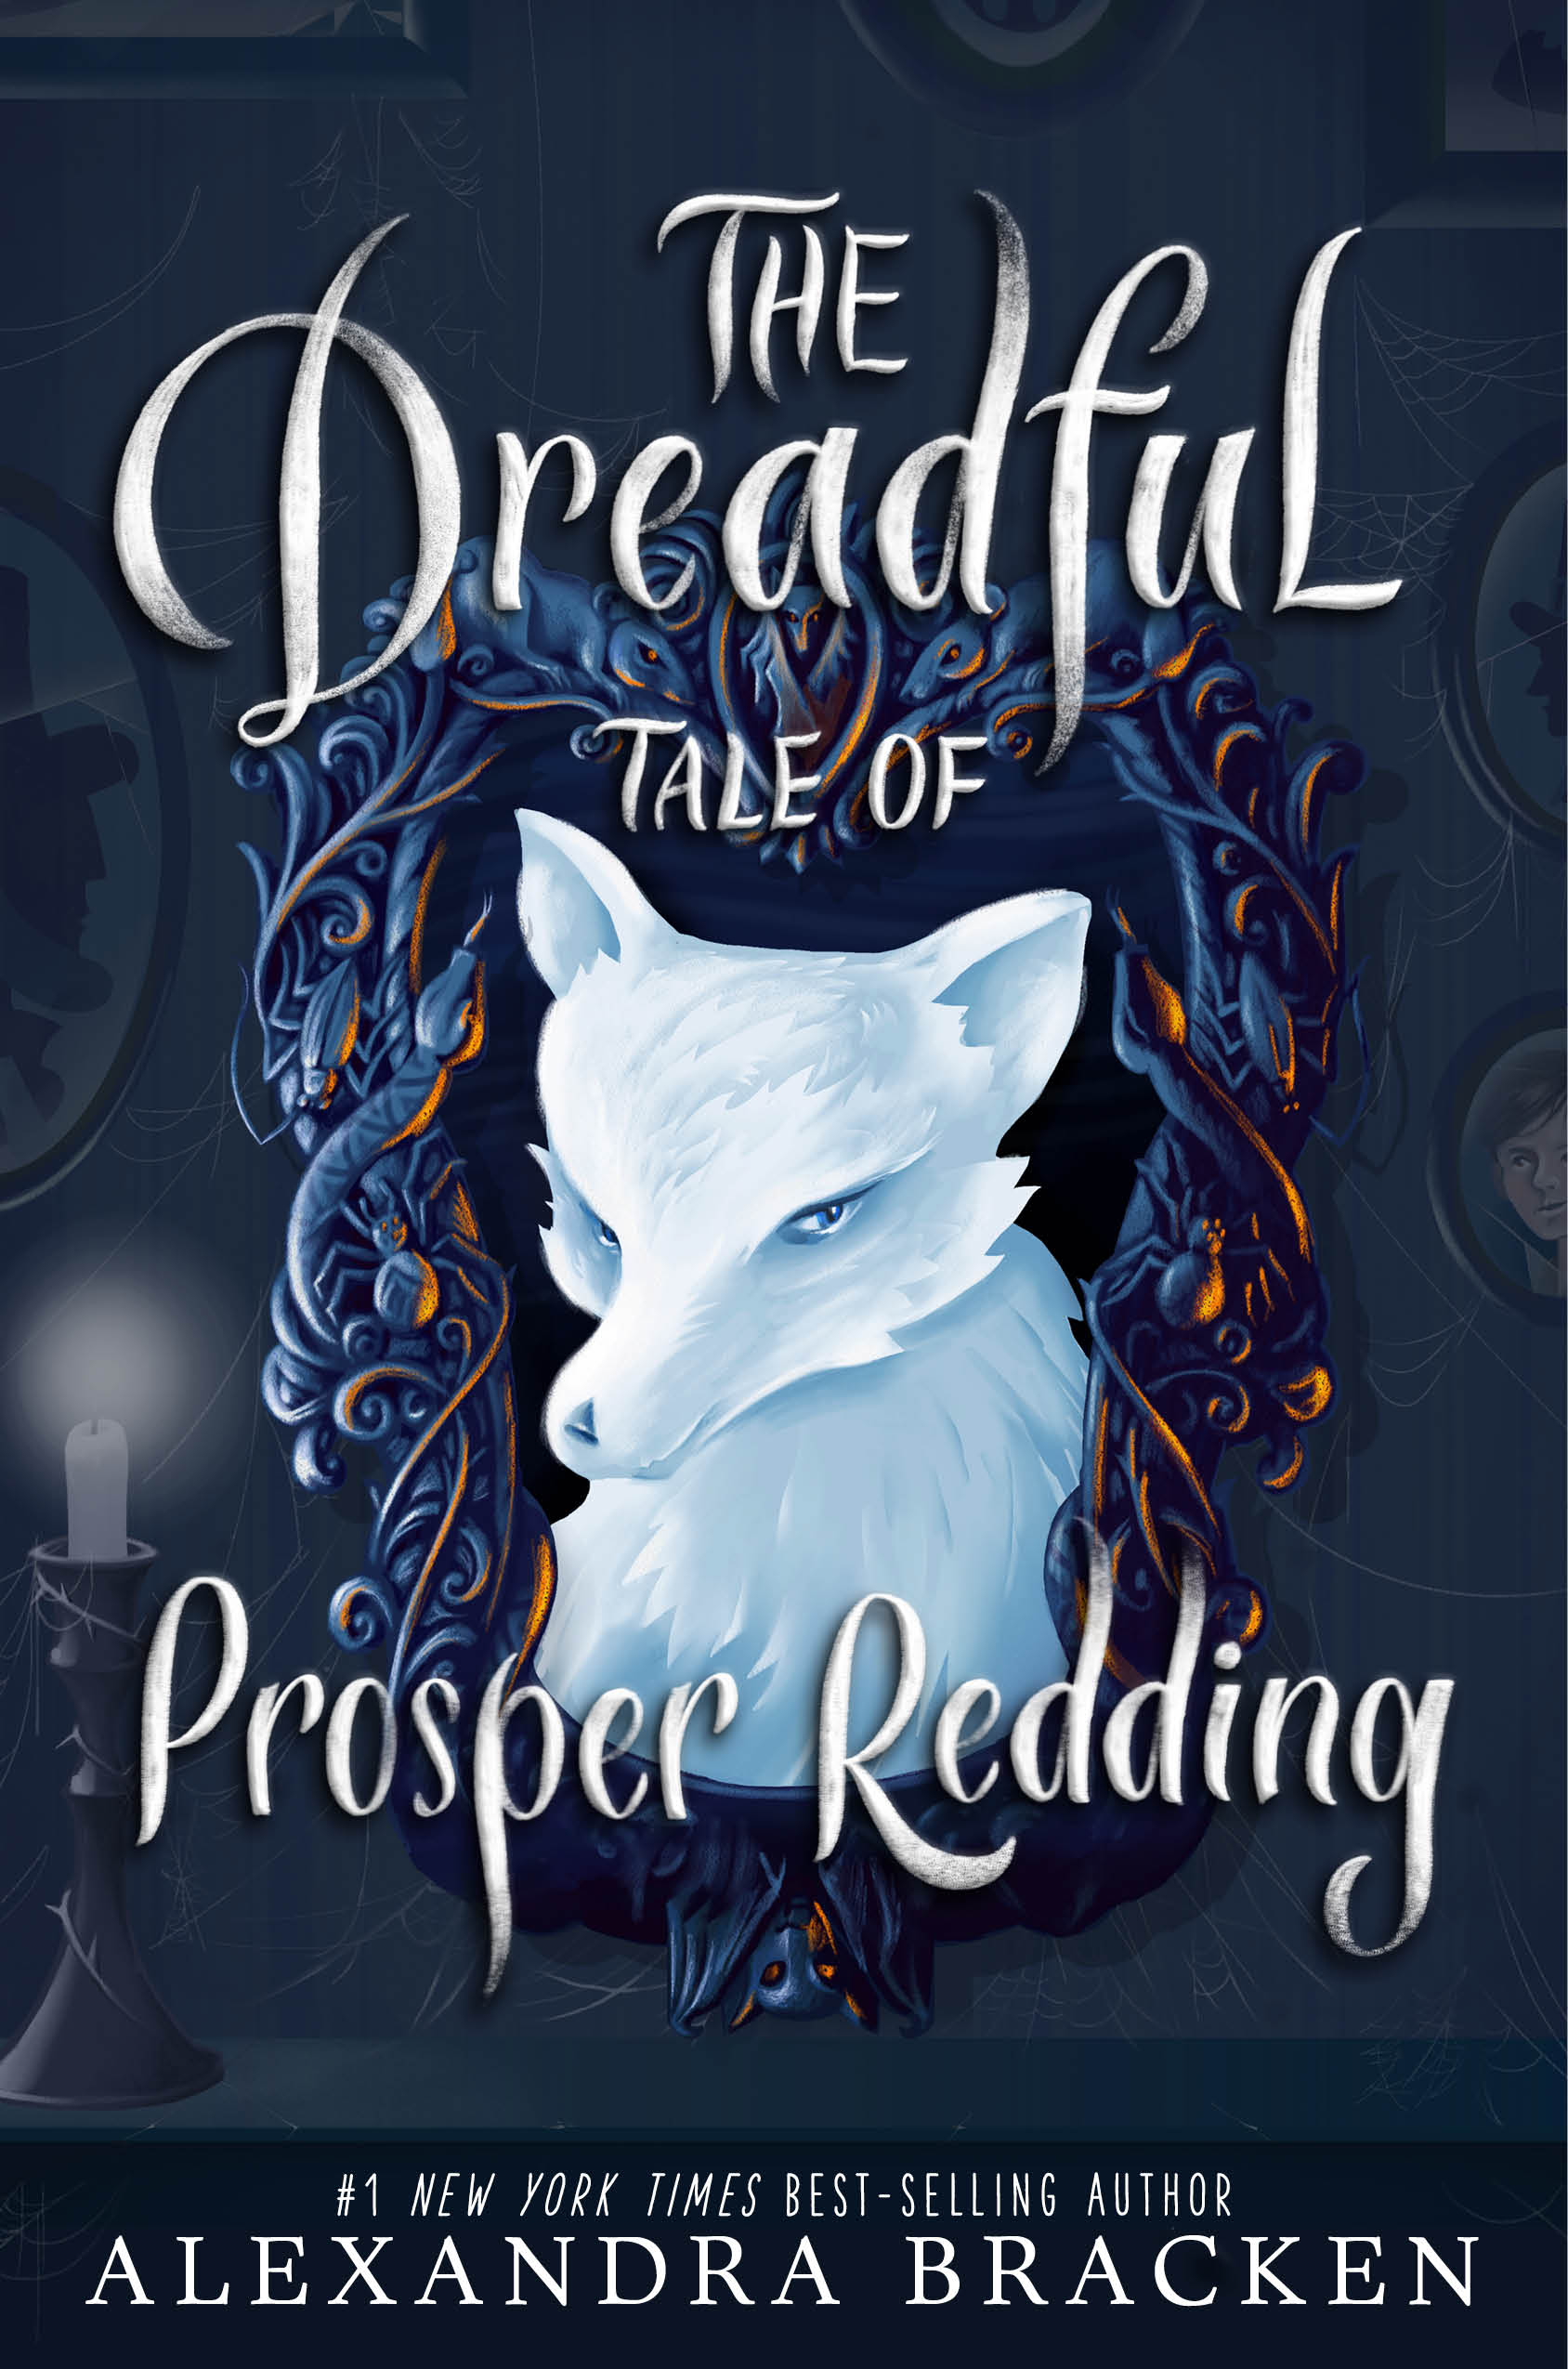 Image result for tale of prosper redding cover